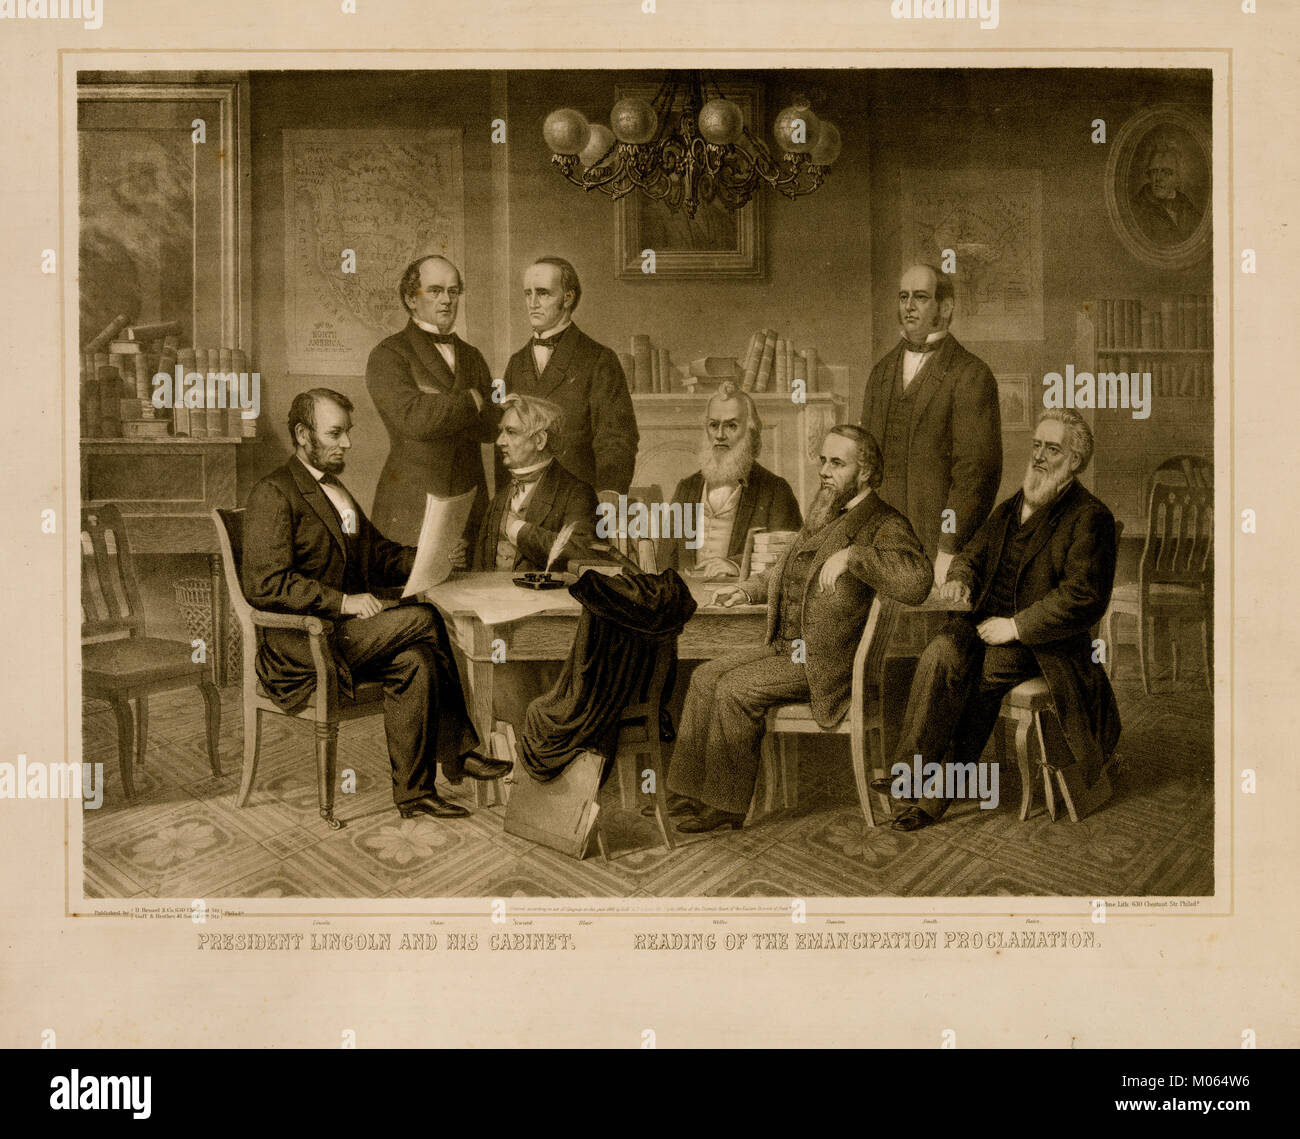 President Lincoln And His Cabinet Reading Of The